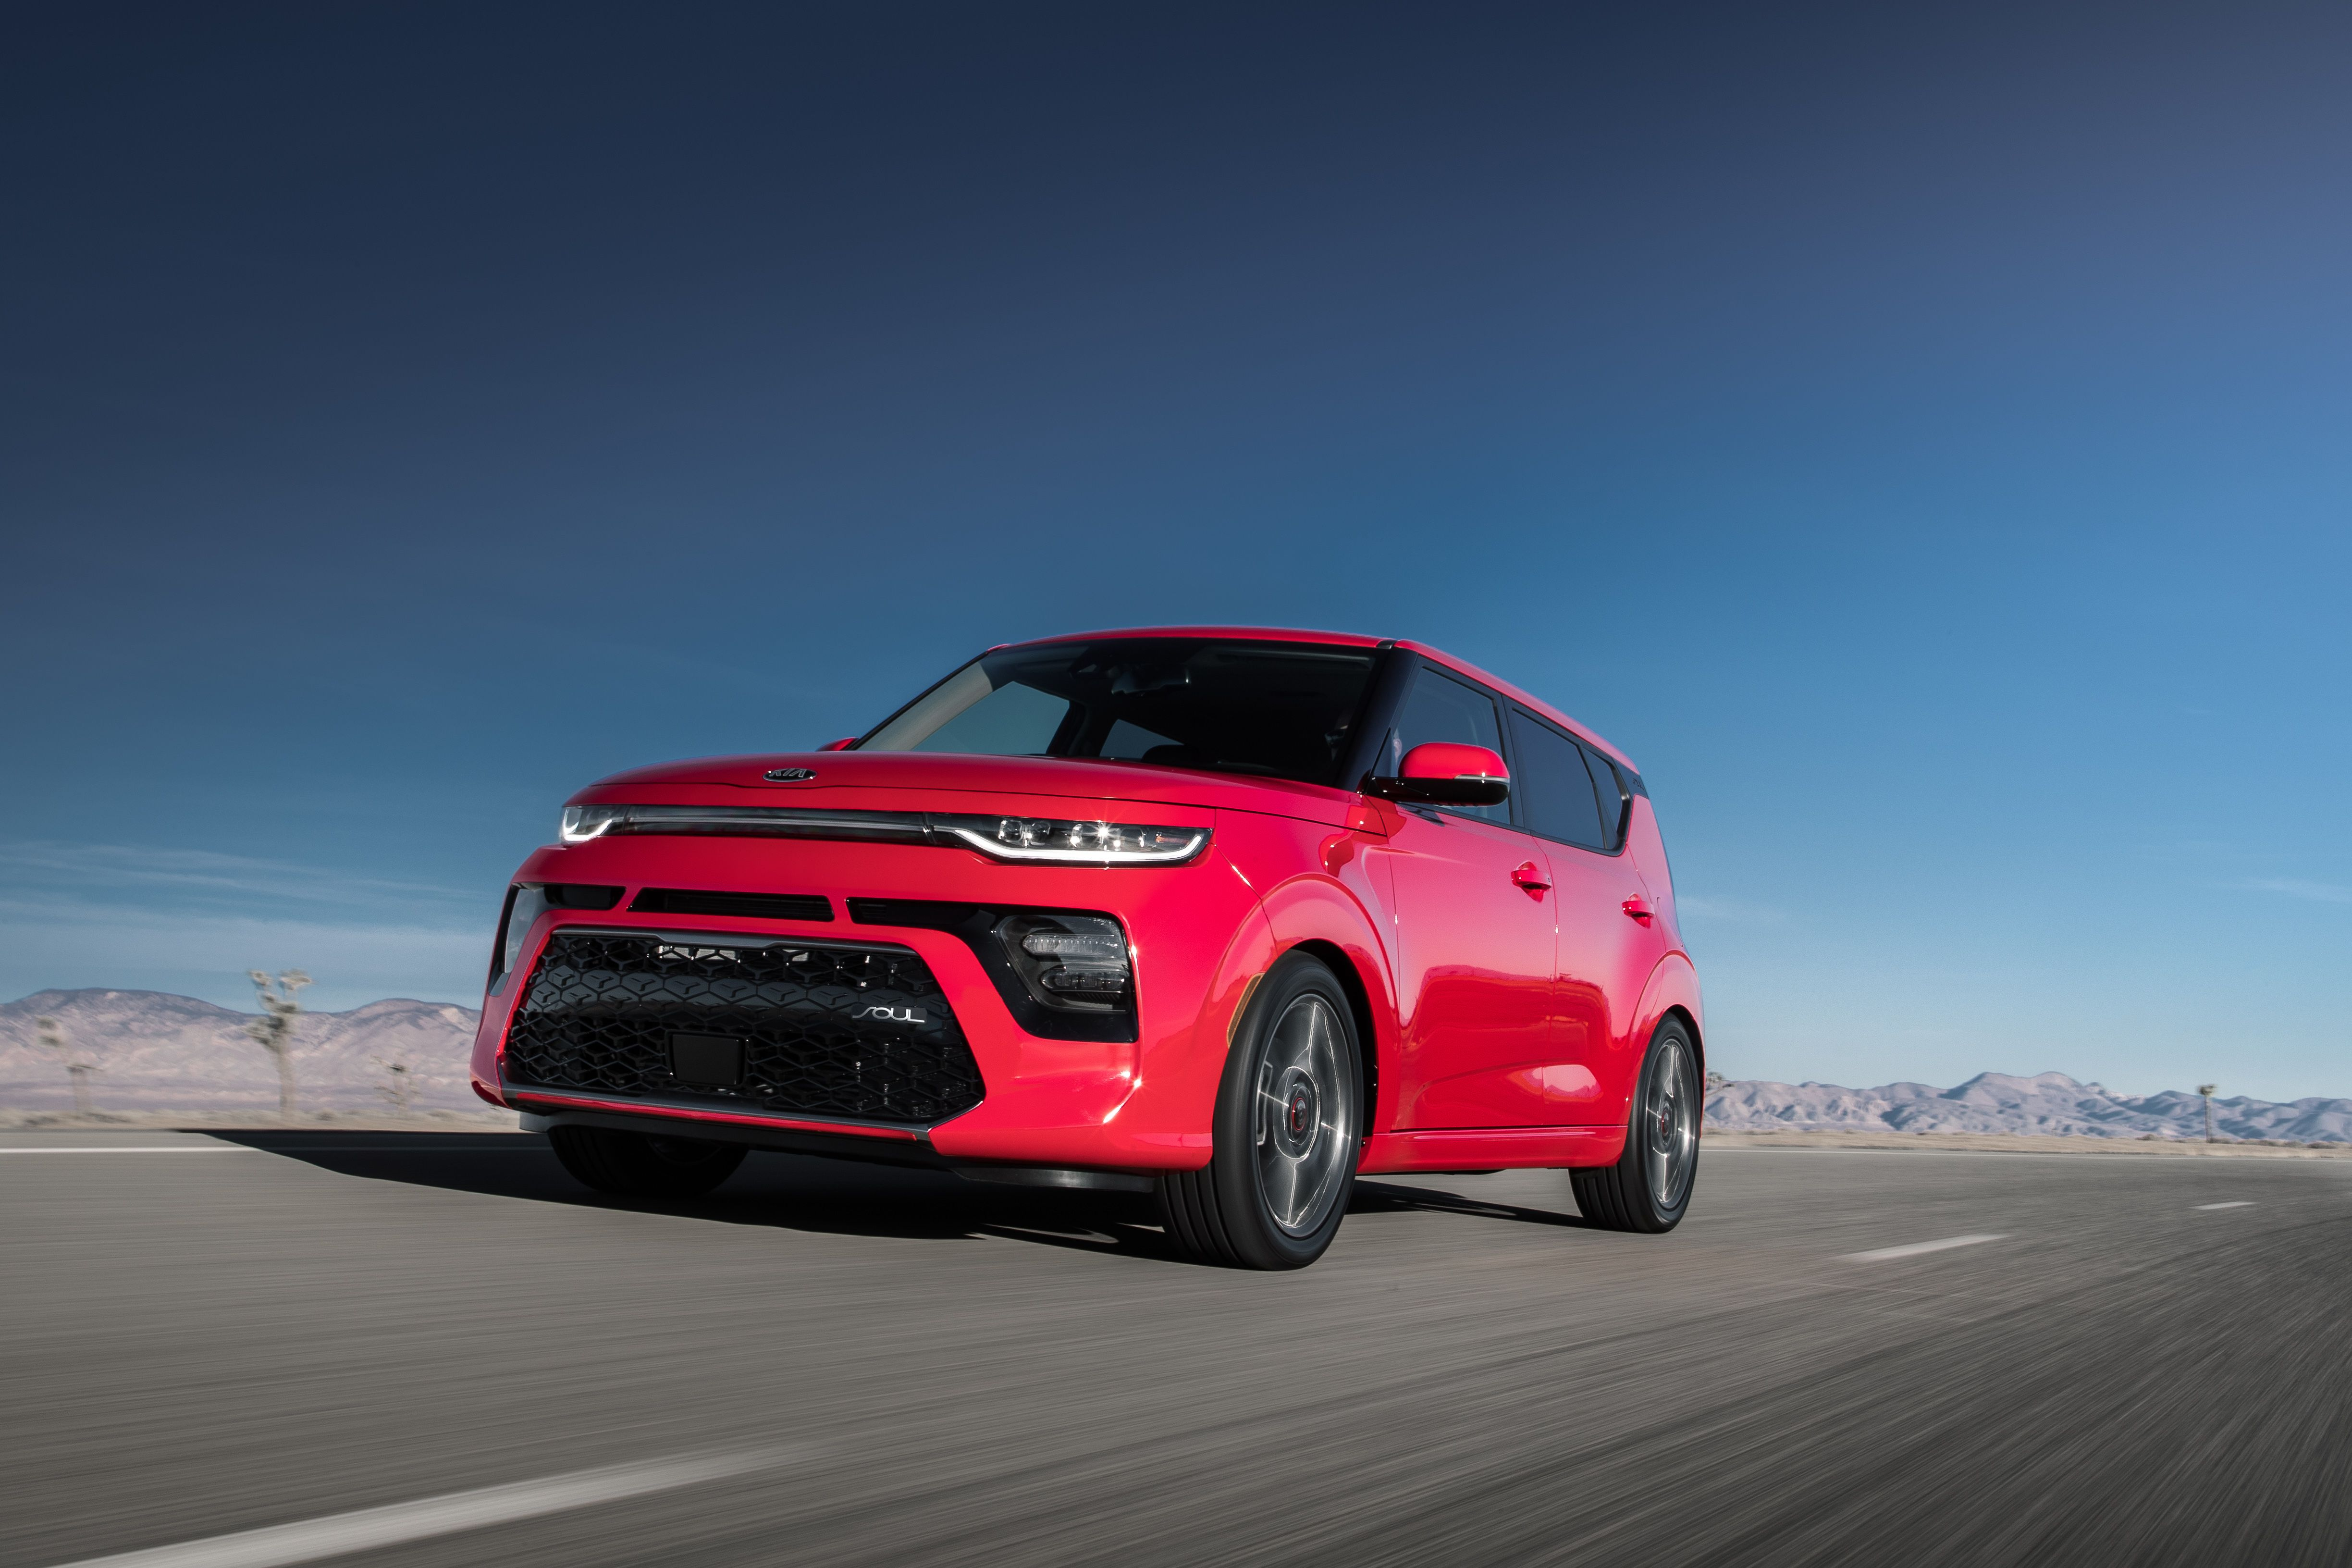 5 Kia Soul Review, Pricing, and Specs